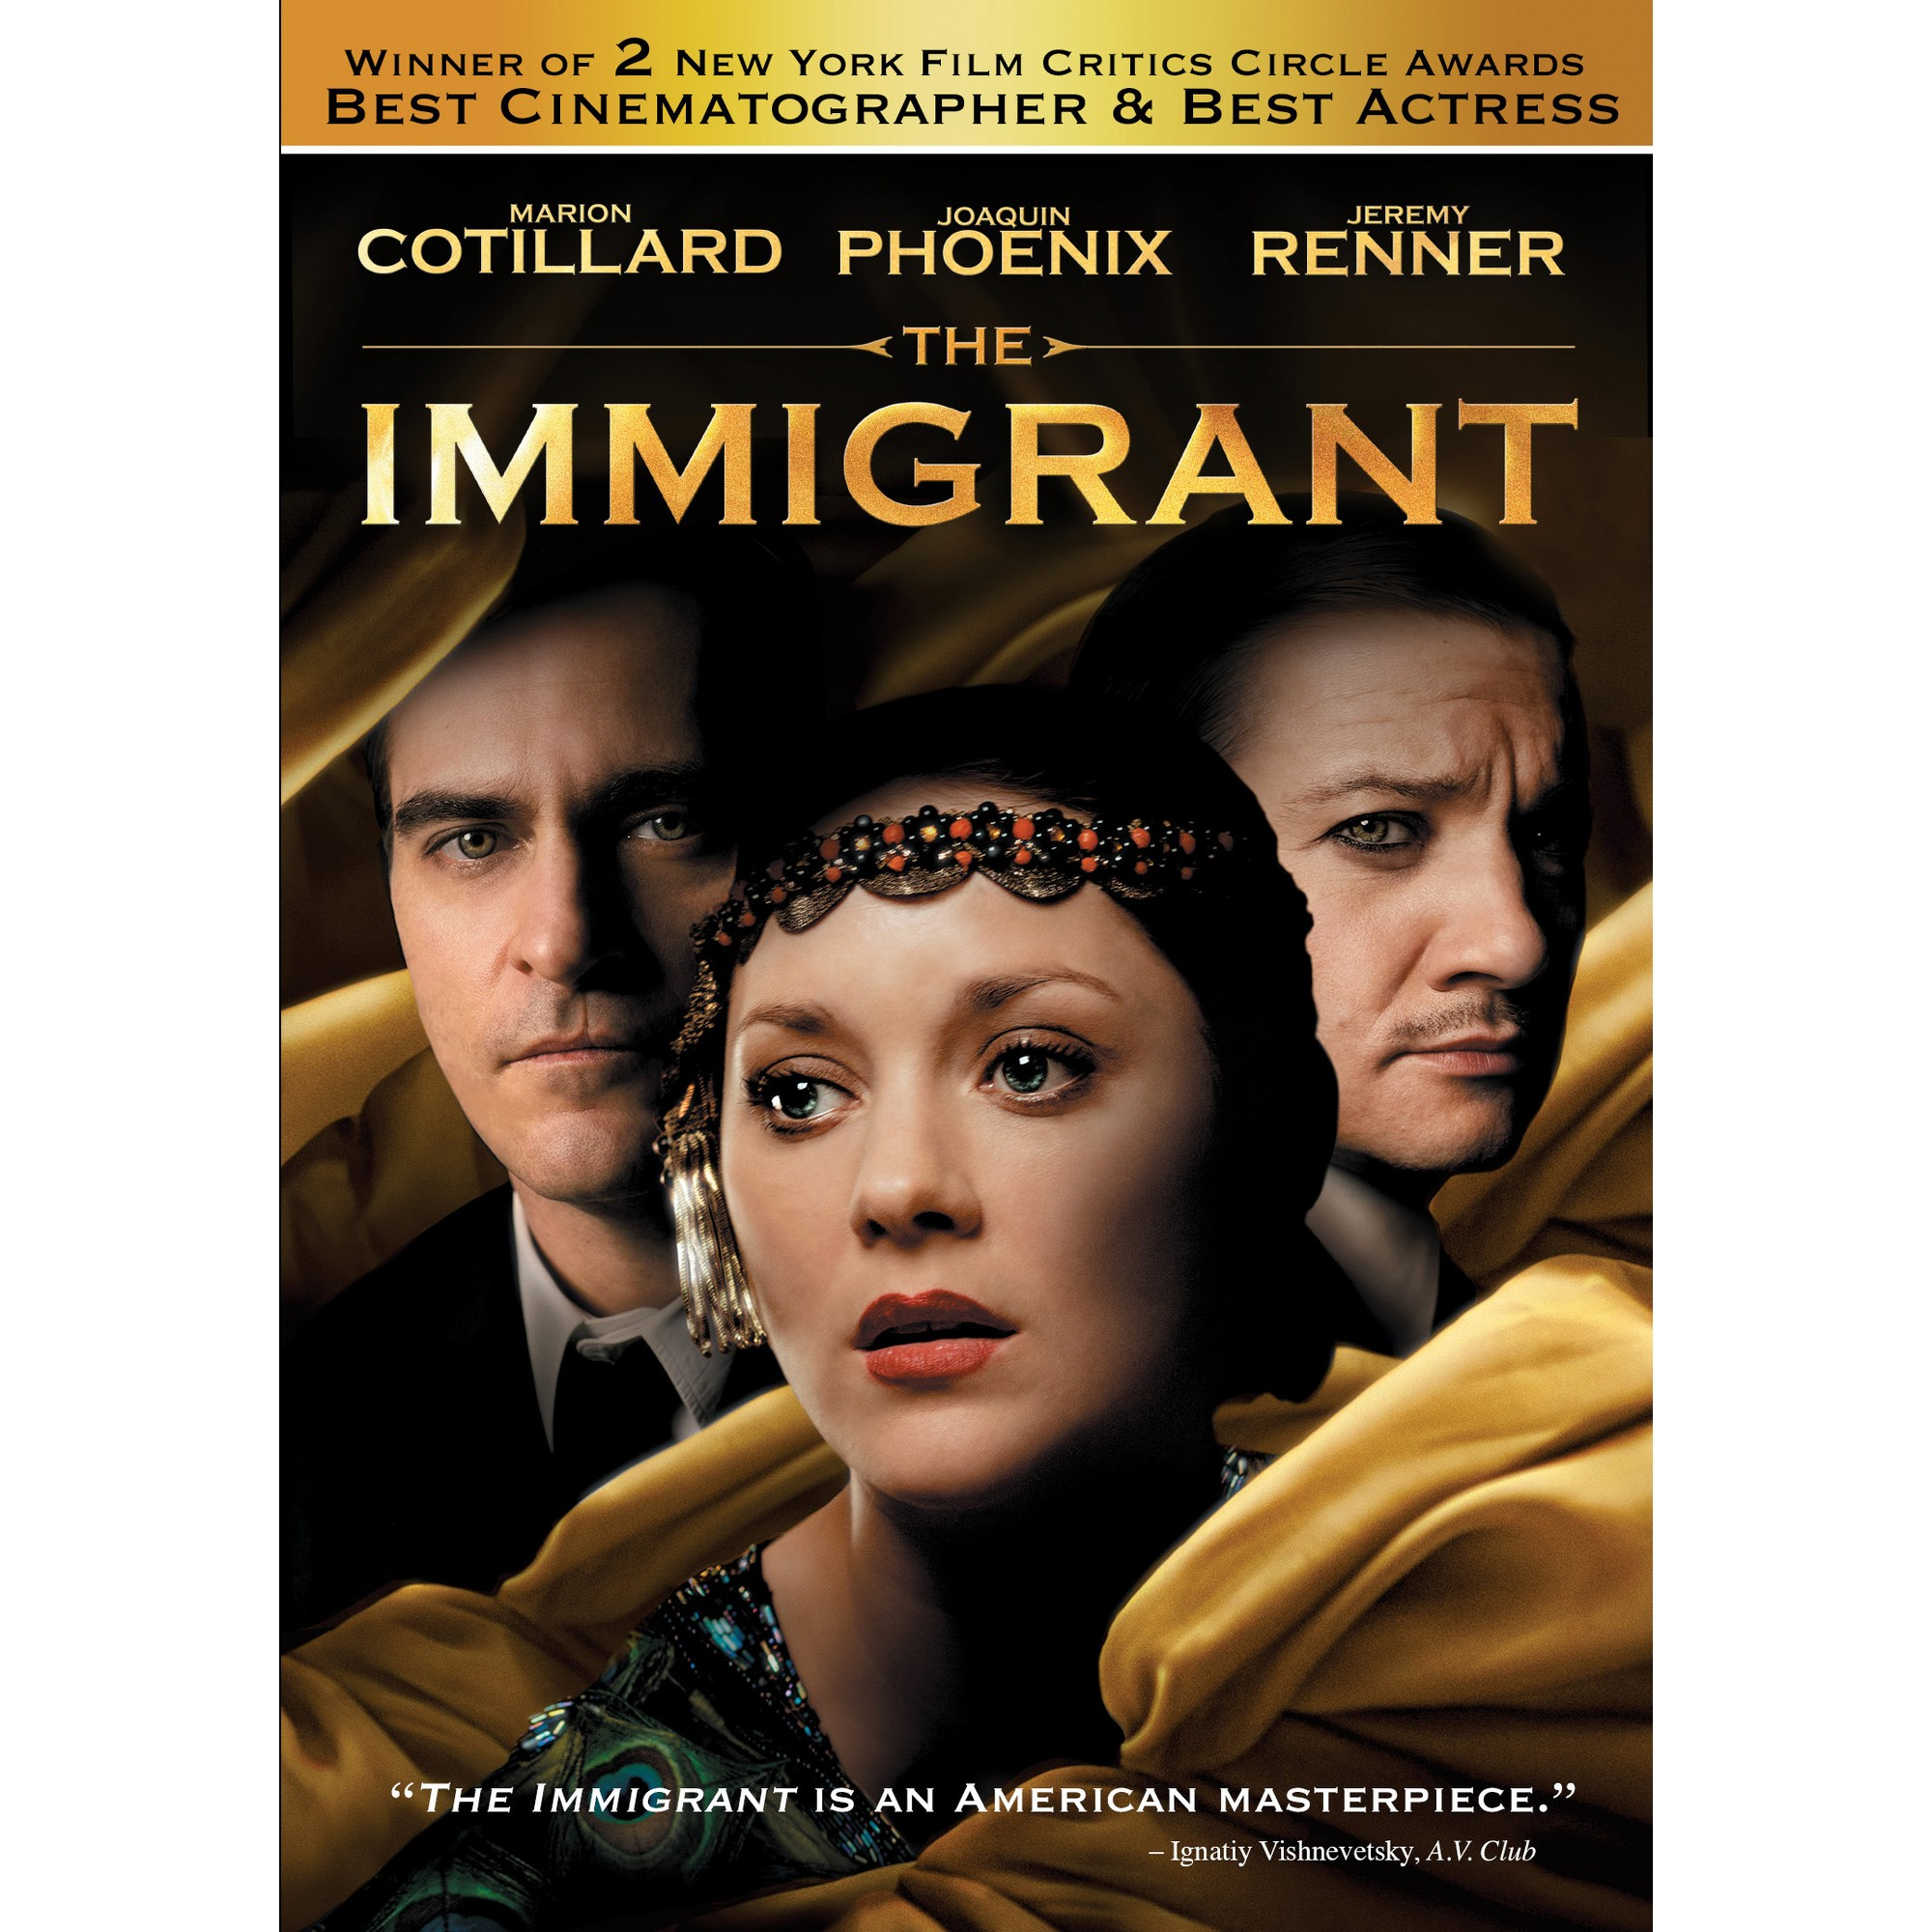 The Immigrant (With images) Blu ray movies, Blu, Movie tv